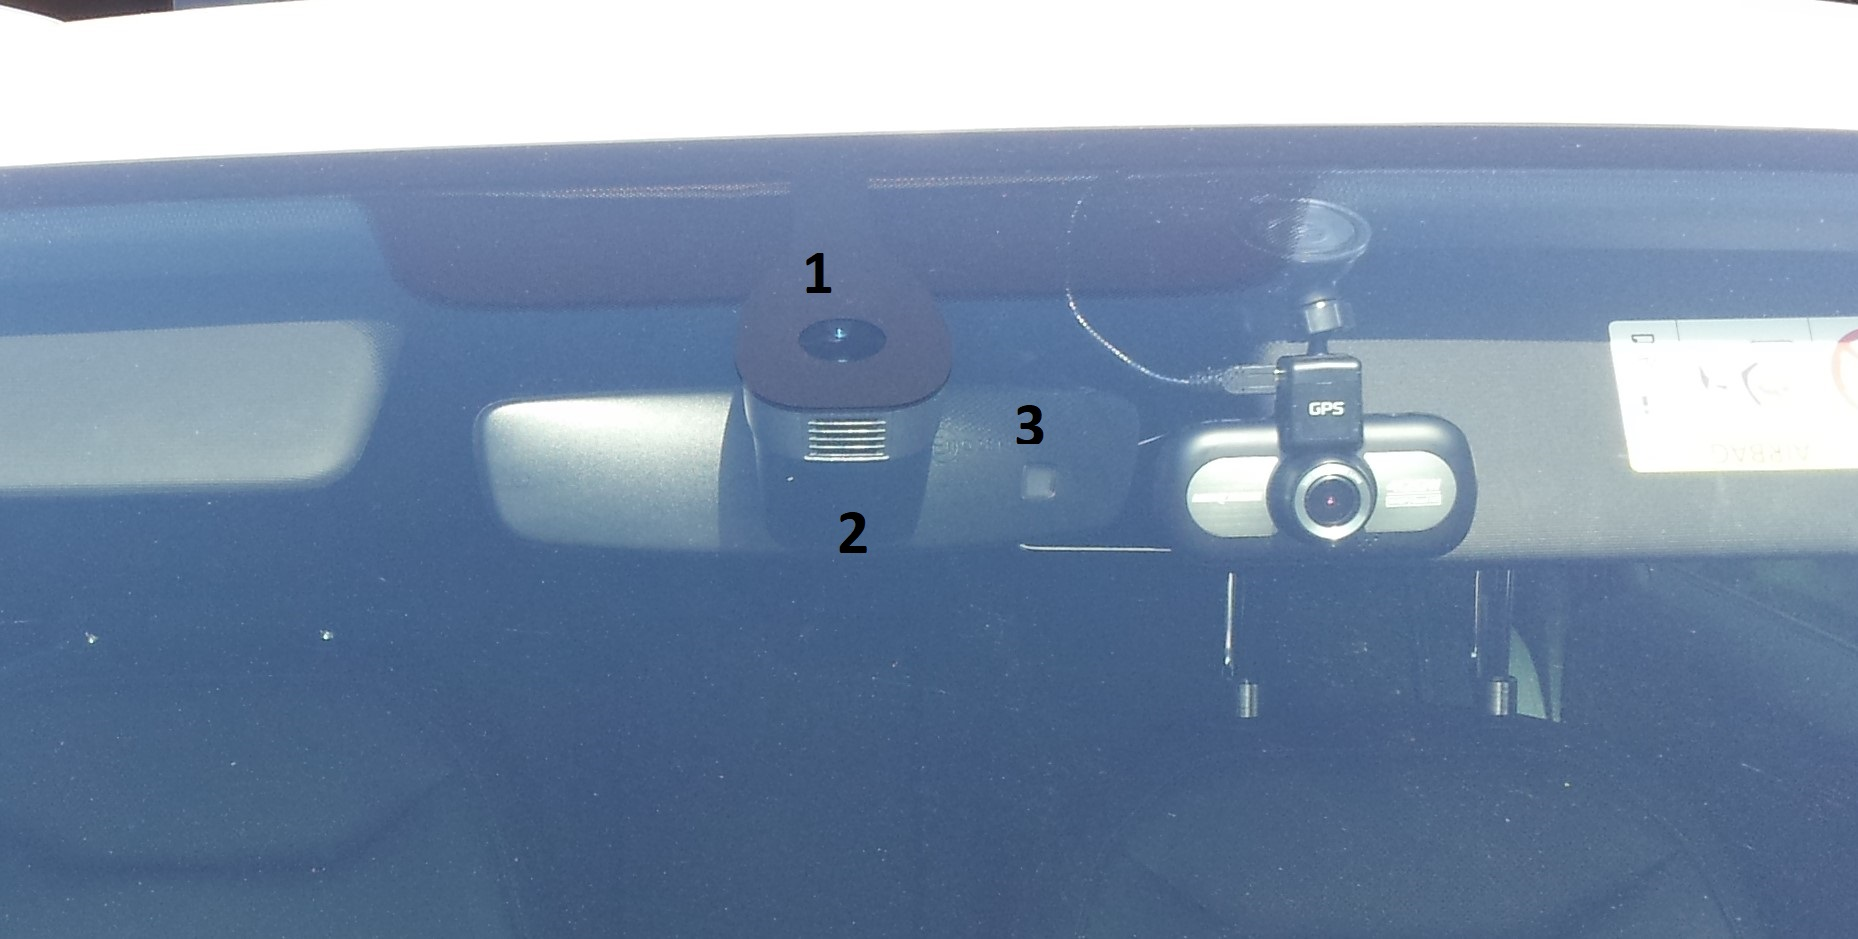 Ateca Rear View Mirror.jpg